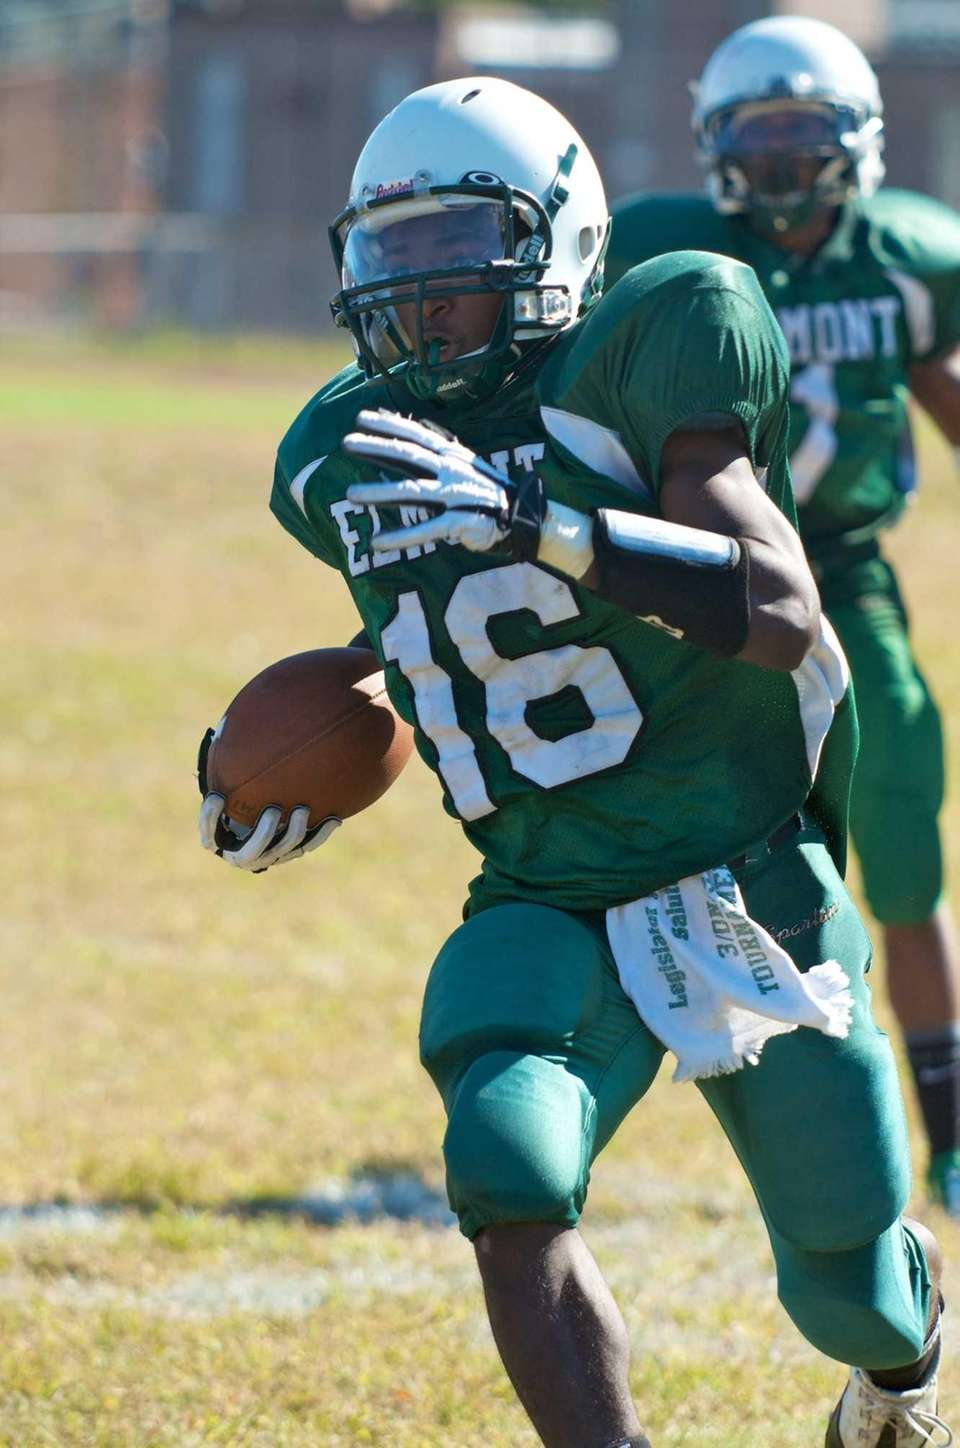 Elmont wide receiver Paul Jean breaks past the